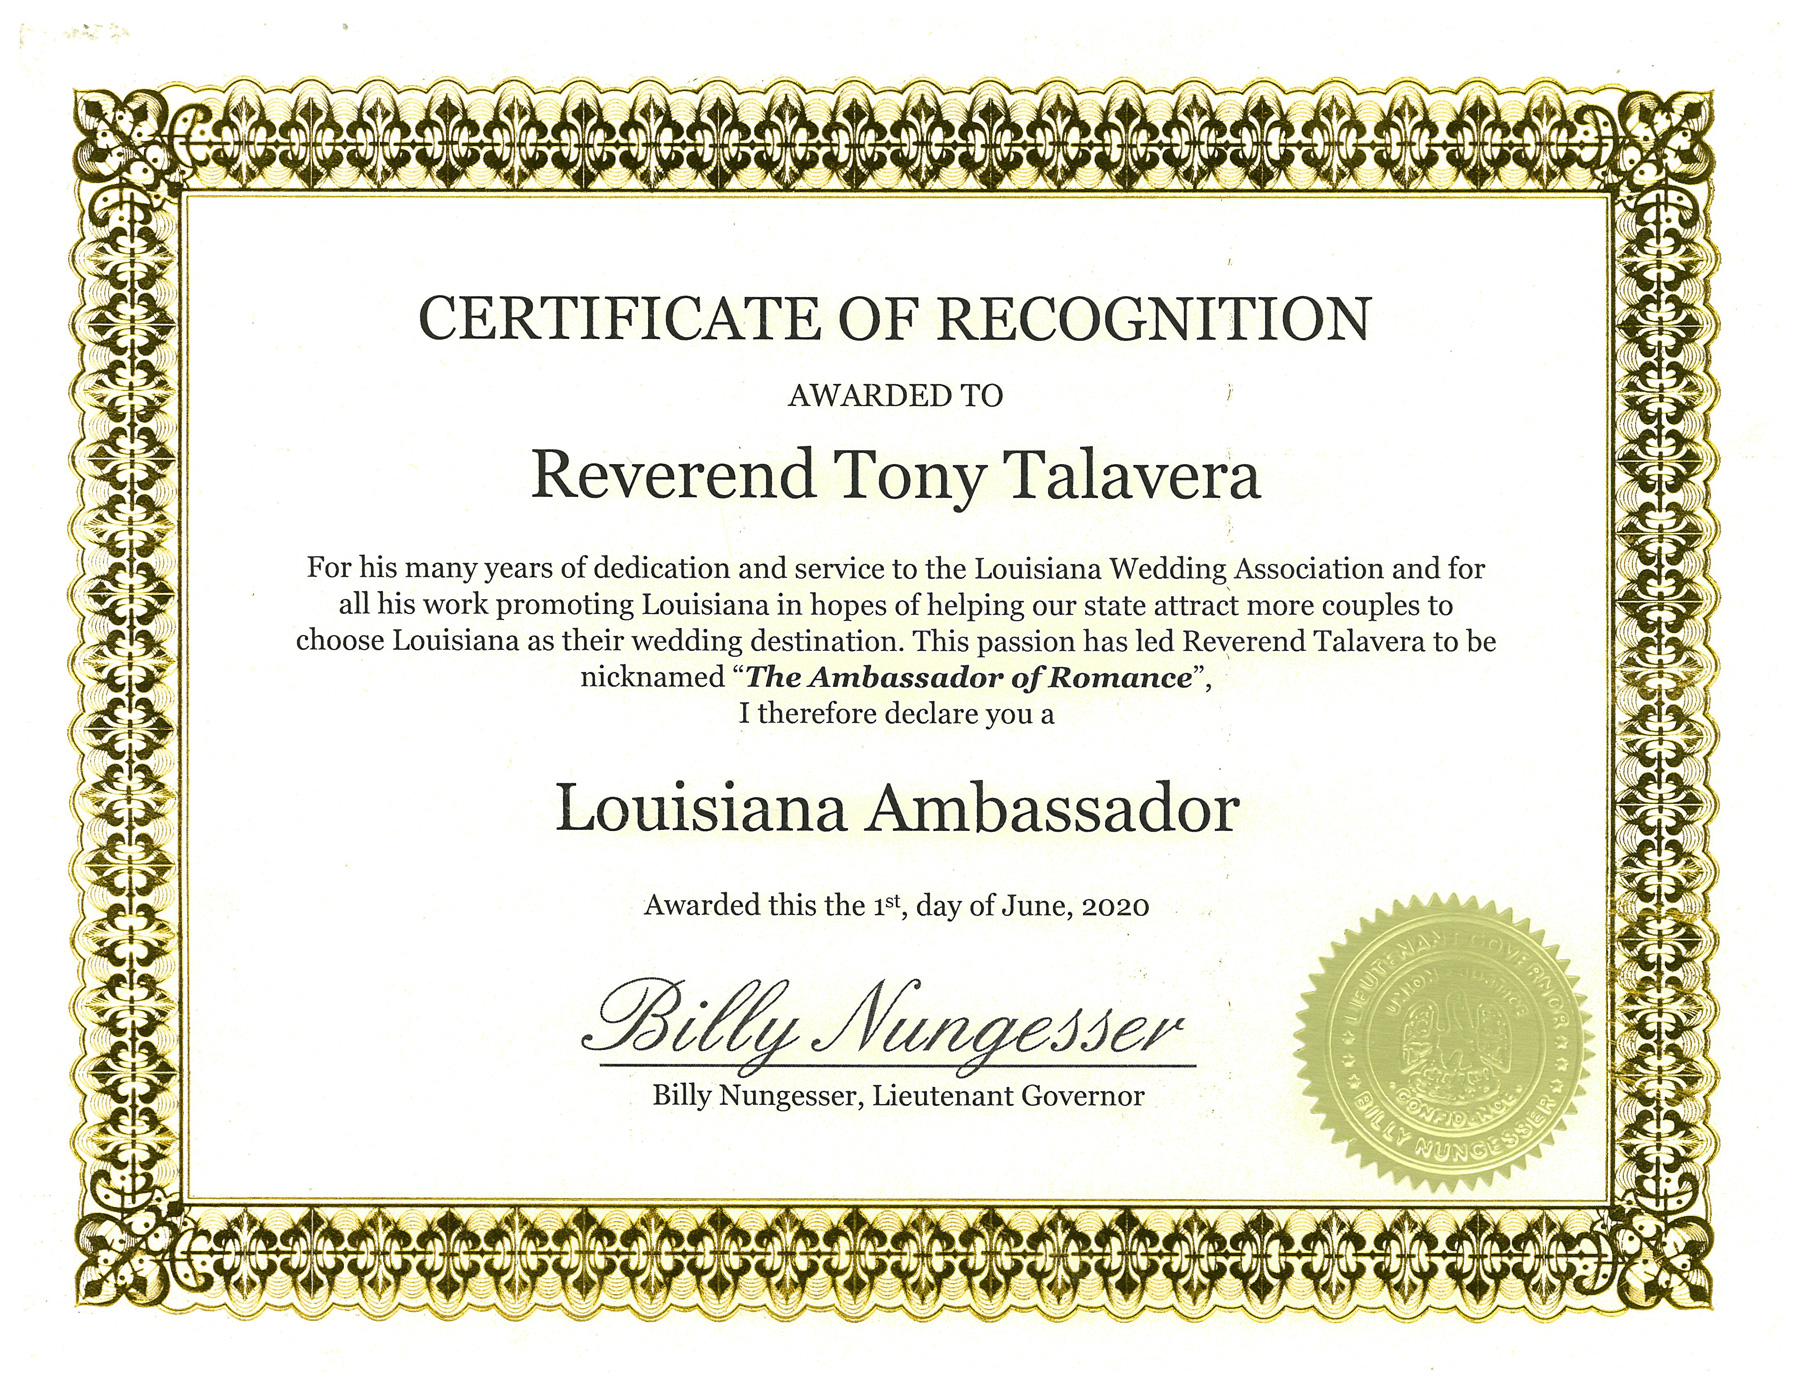 Reverend Tony Talavera, Louisiana Ambassador